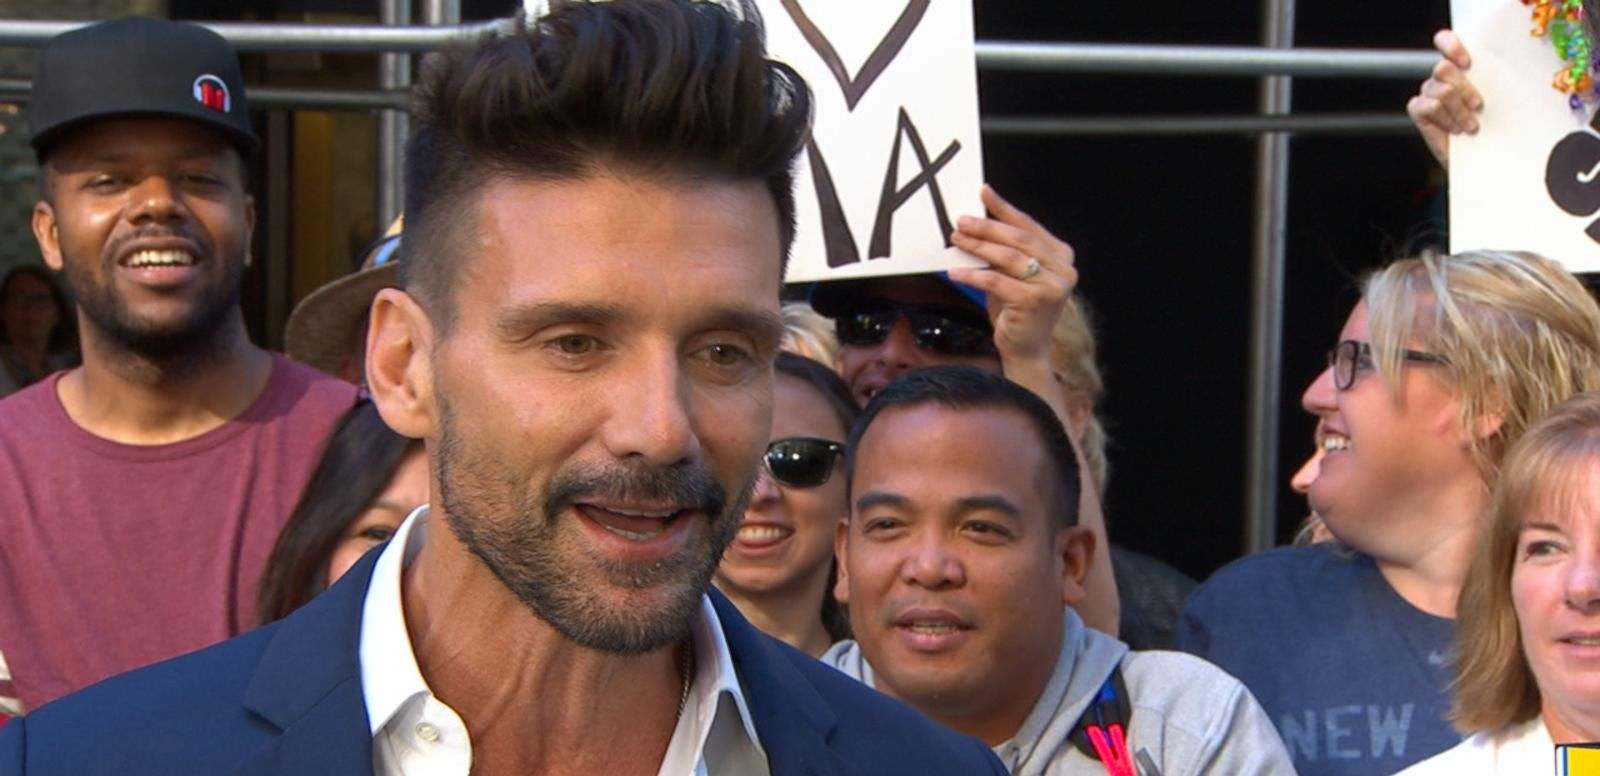 VIDEO: Frank Grillo Talks 'The Purge: Election Year'